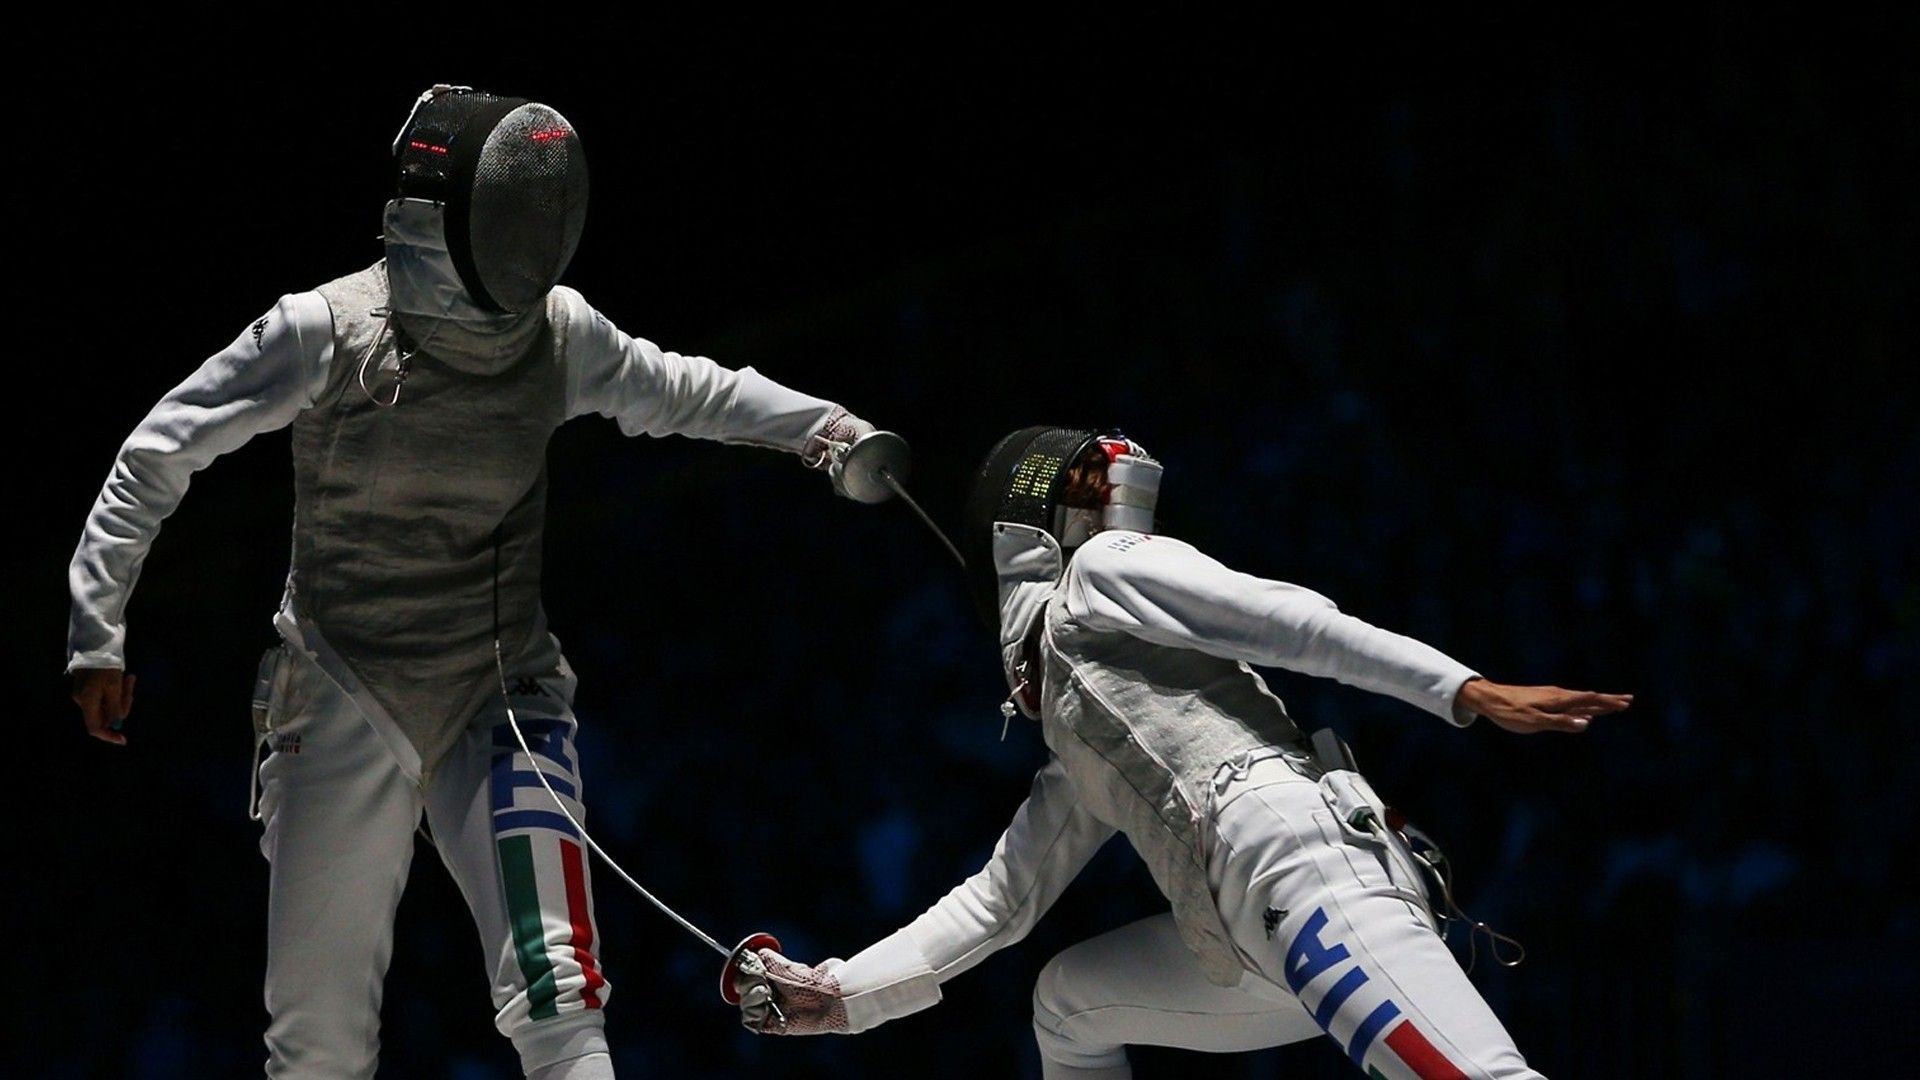 sports fight fencing Olympics 2012 (With images) Sports